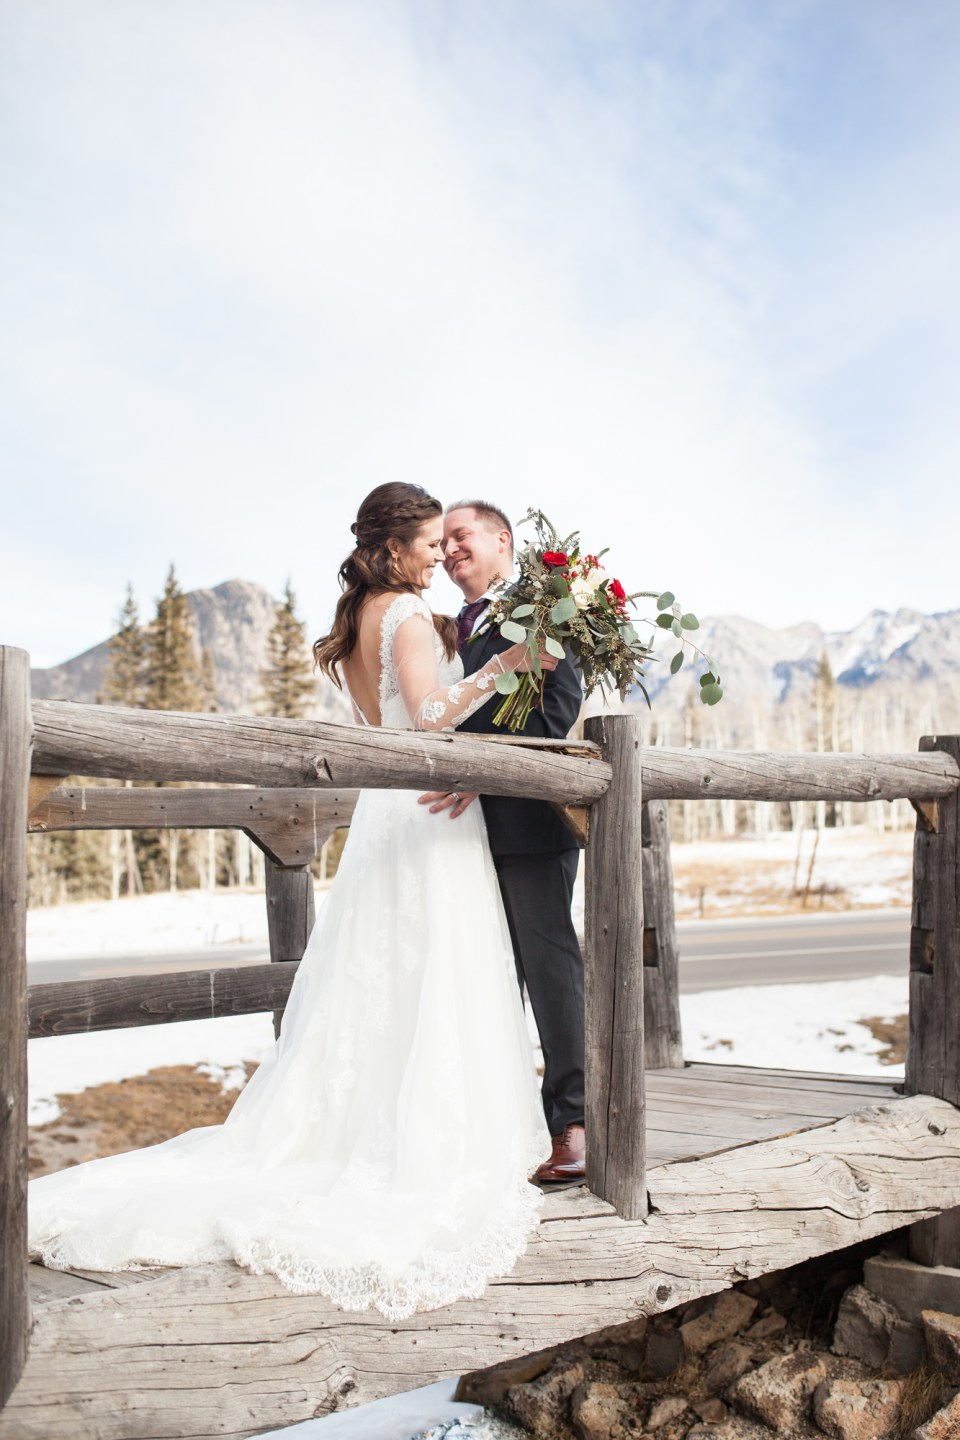 winter wedding bride and groom durango colorado winter wedding